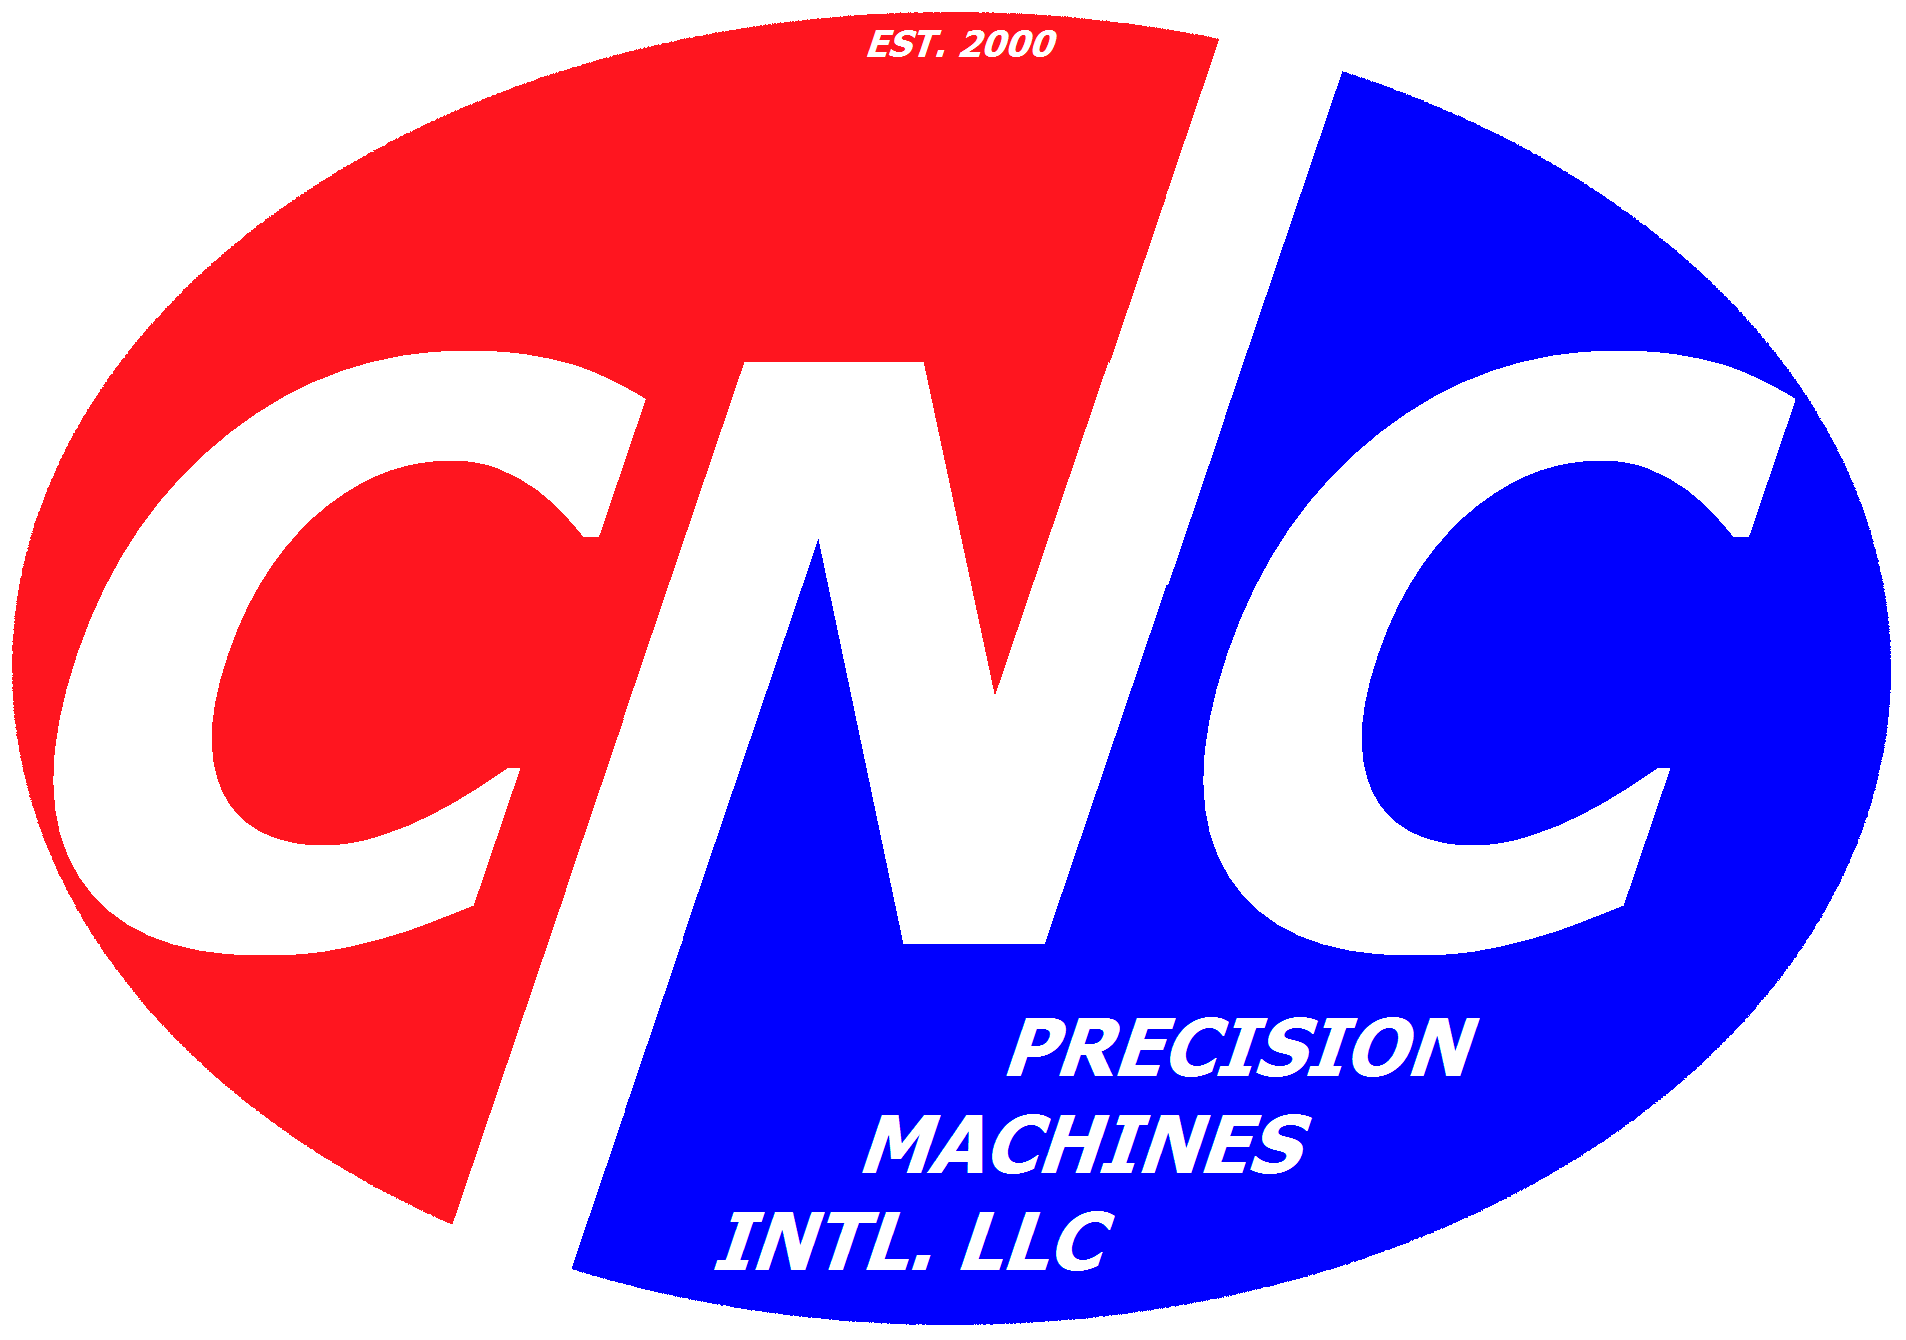 CNC Precision Machines Int. LLC